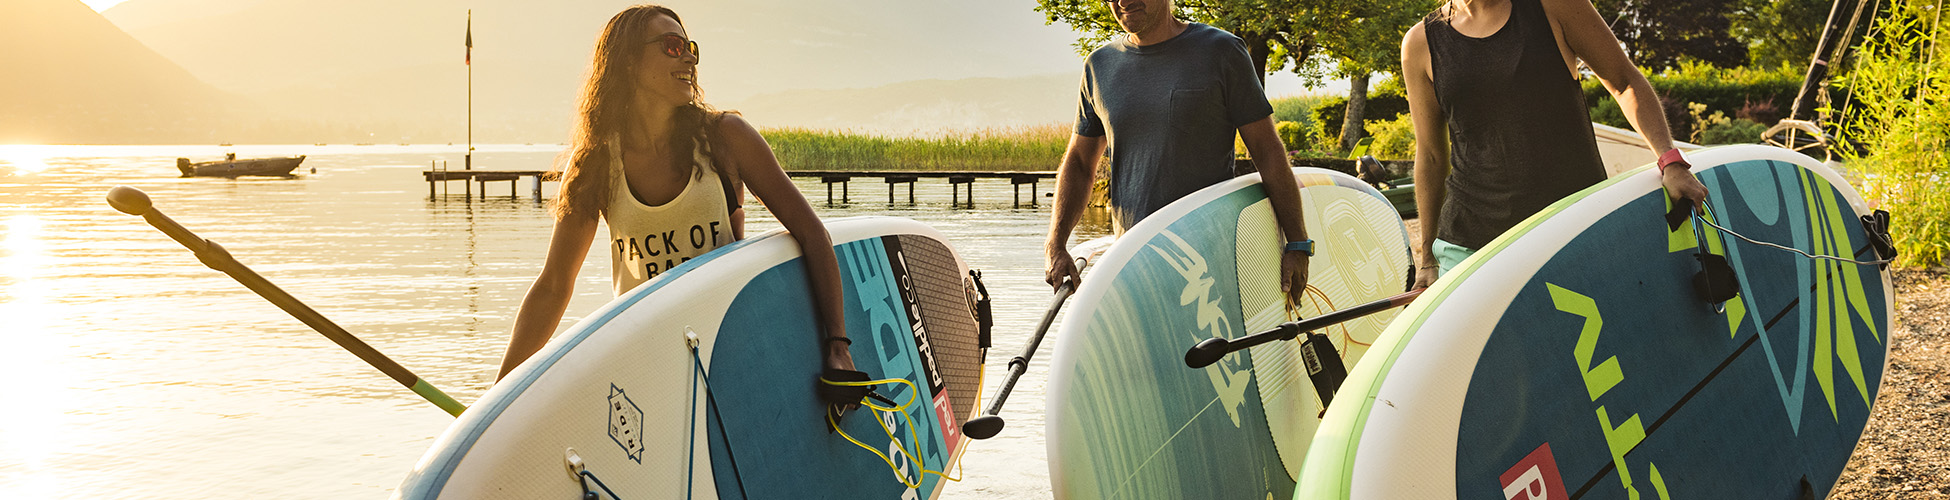 NCY SUP location paddle lac annecy